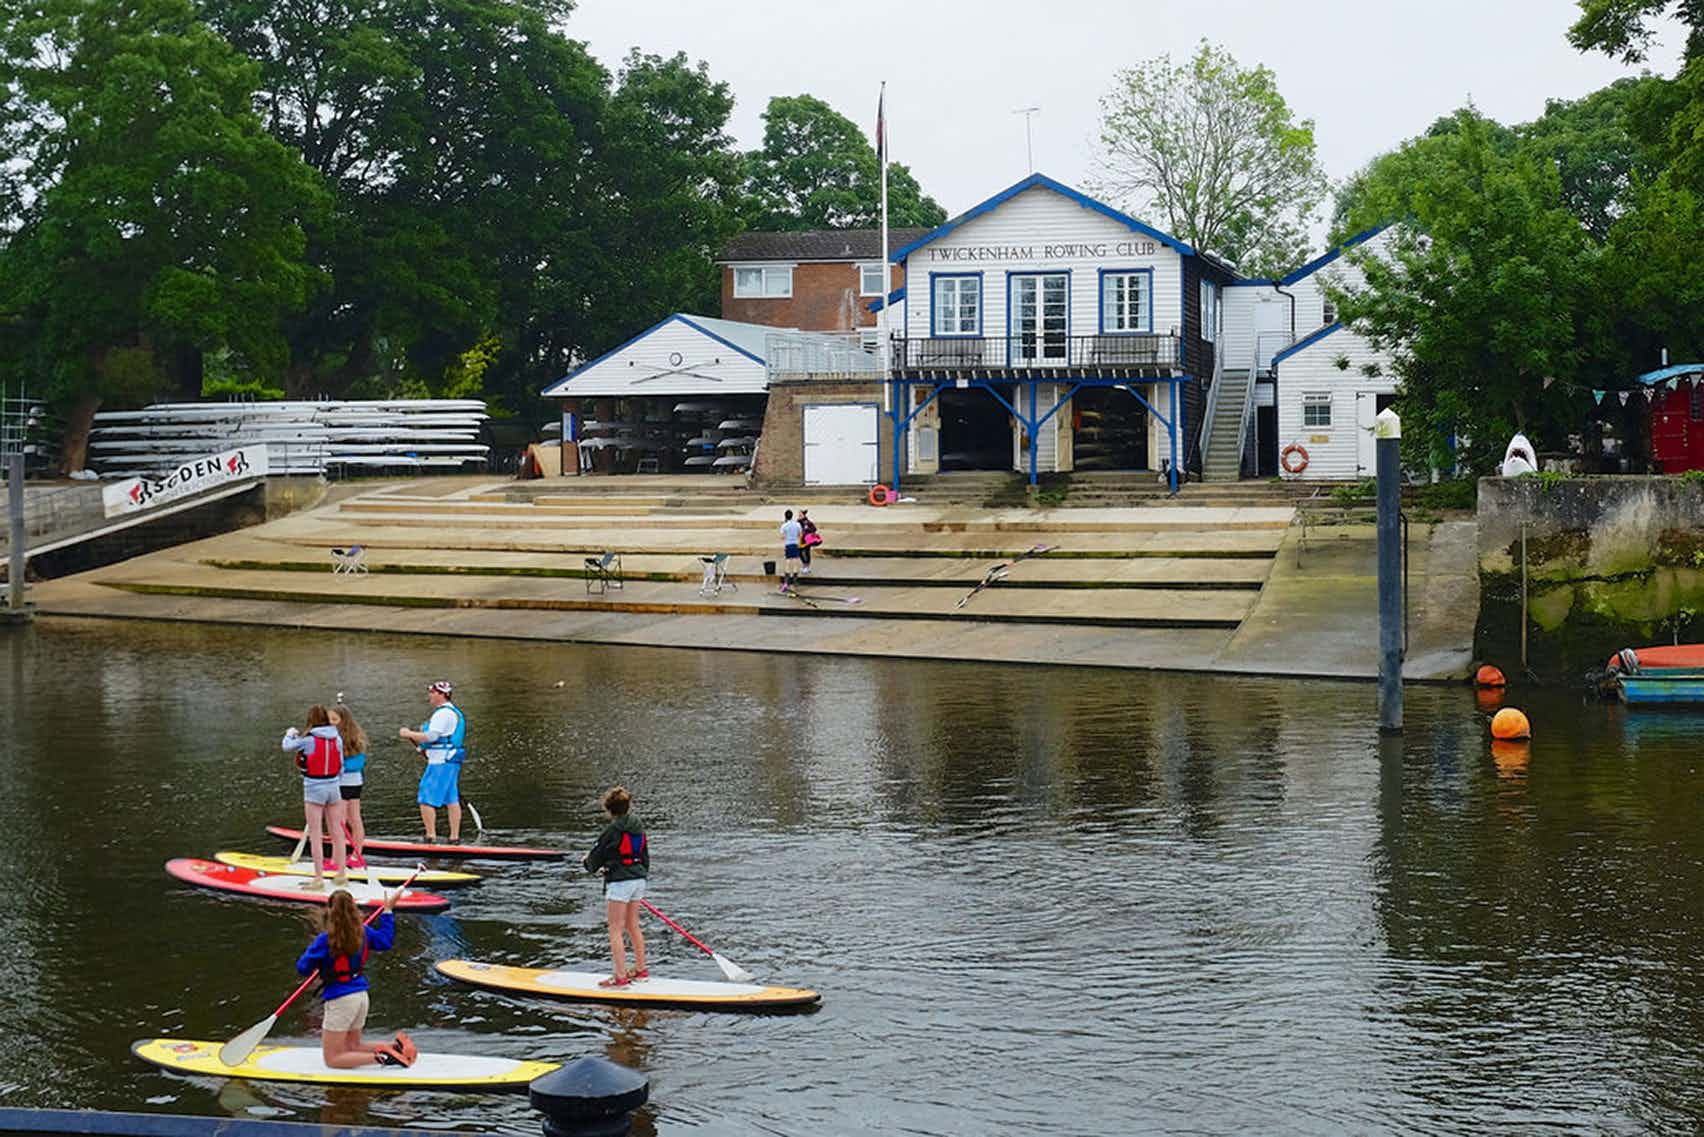 Clubhouse bar and kitchen, Twickenham Rowing Club